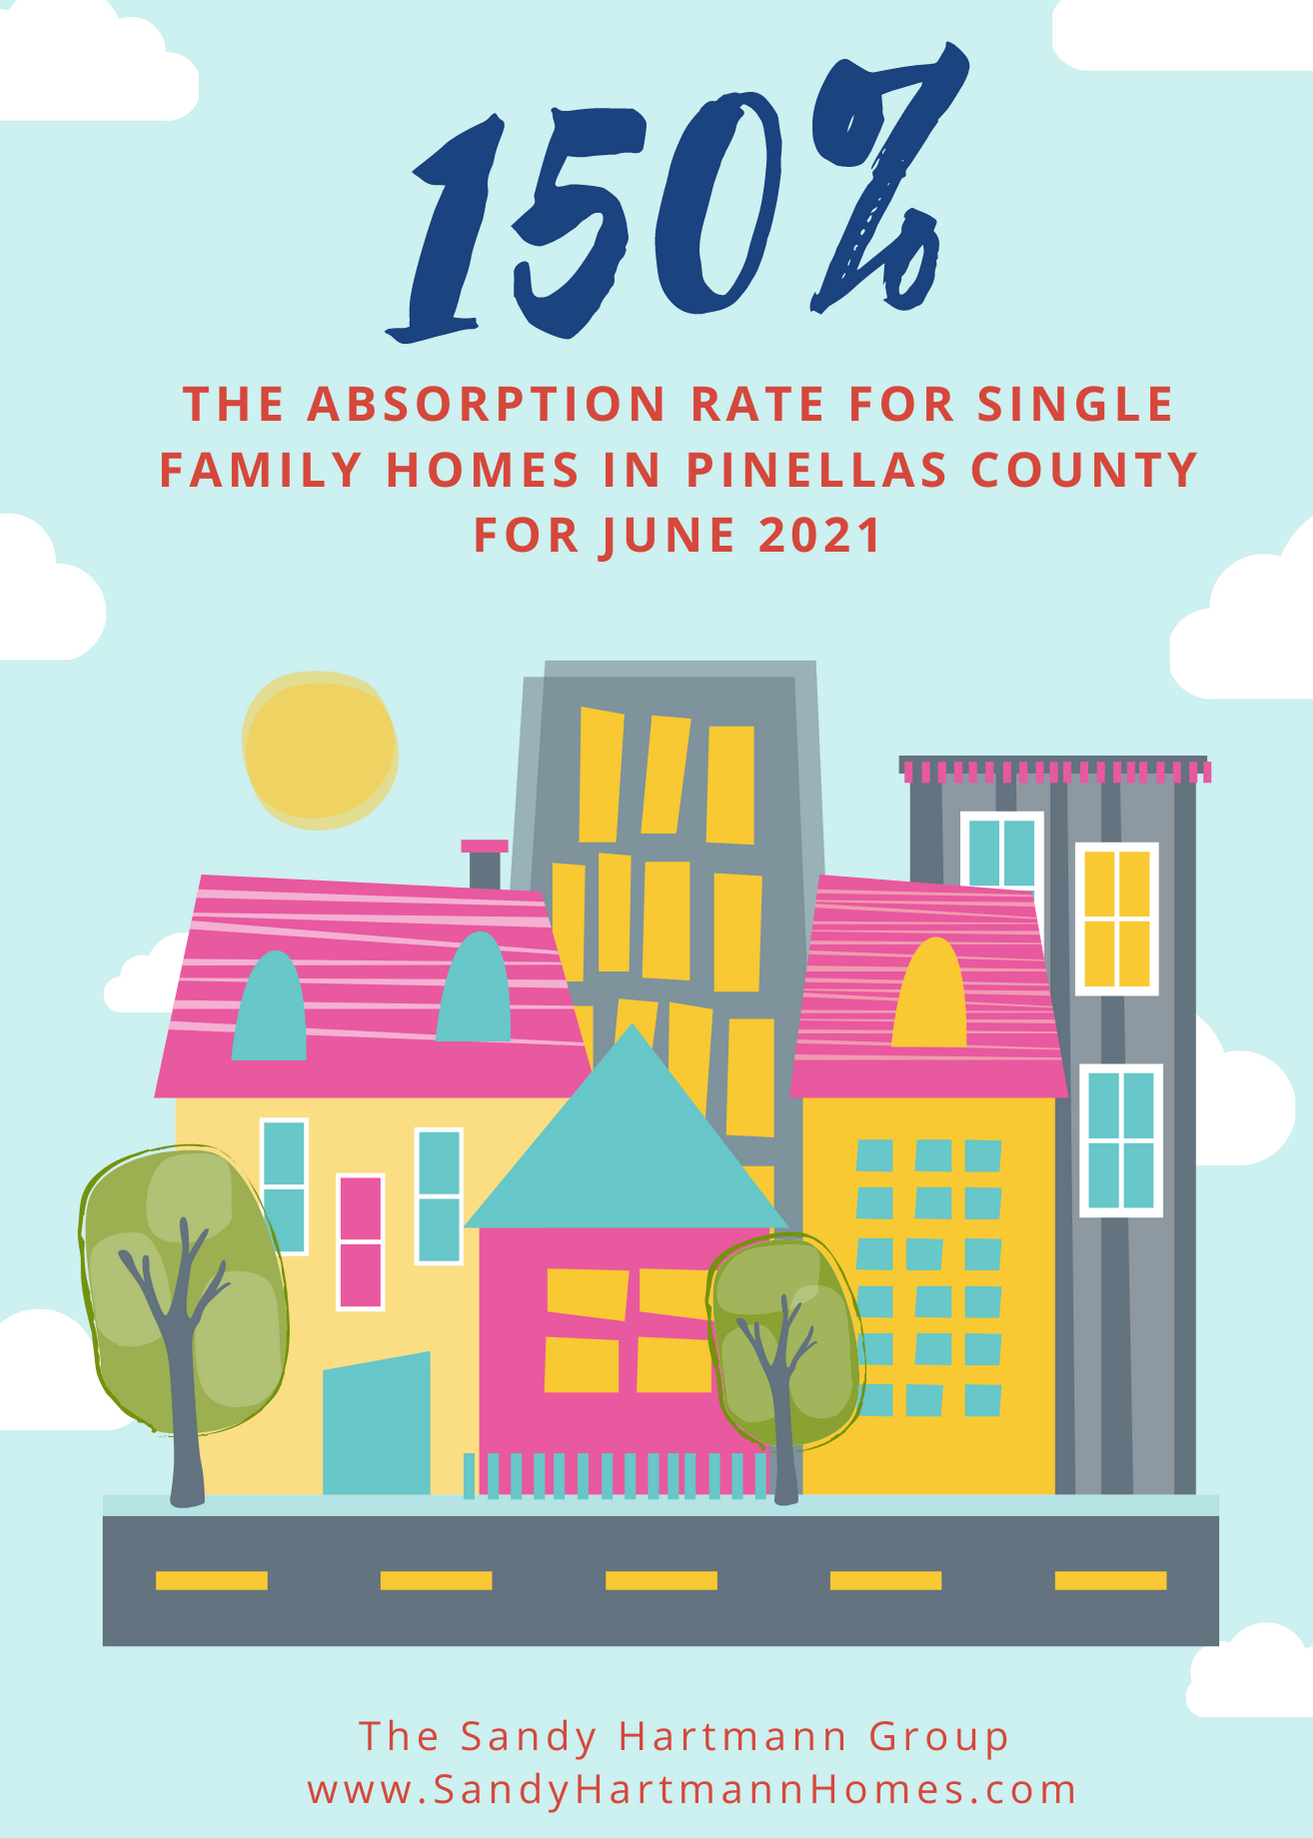 Single Family Home Absorption Rate in June 2021